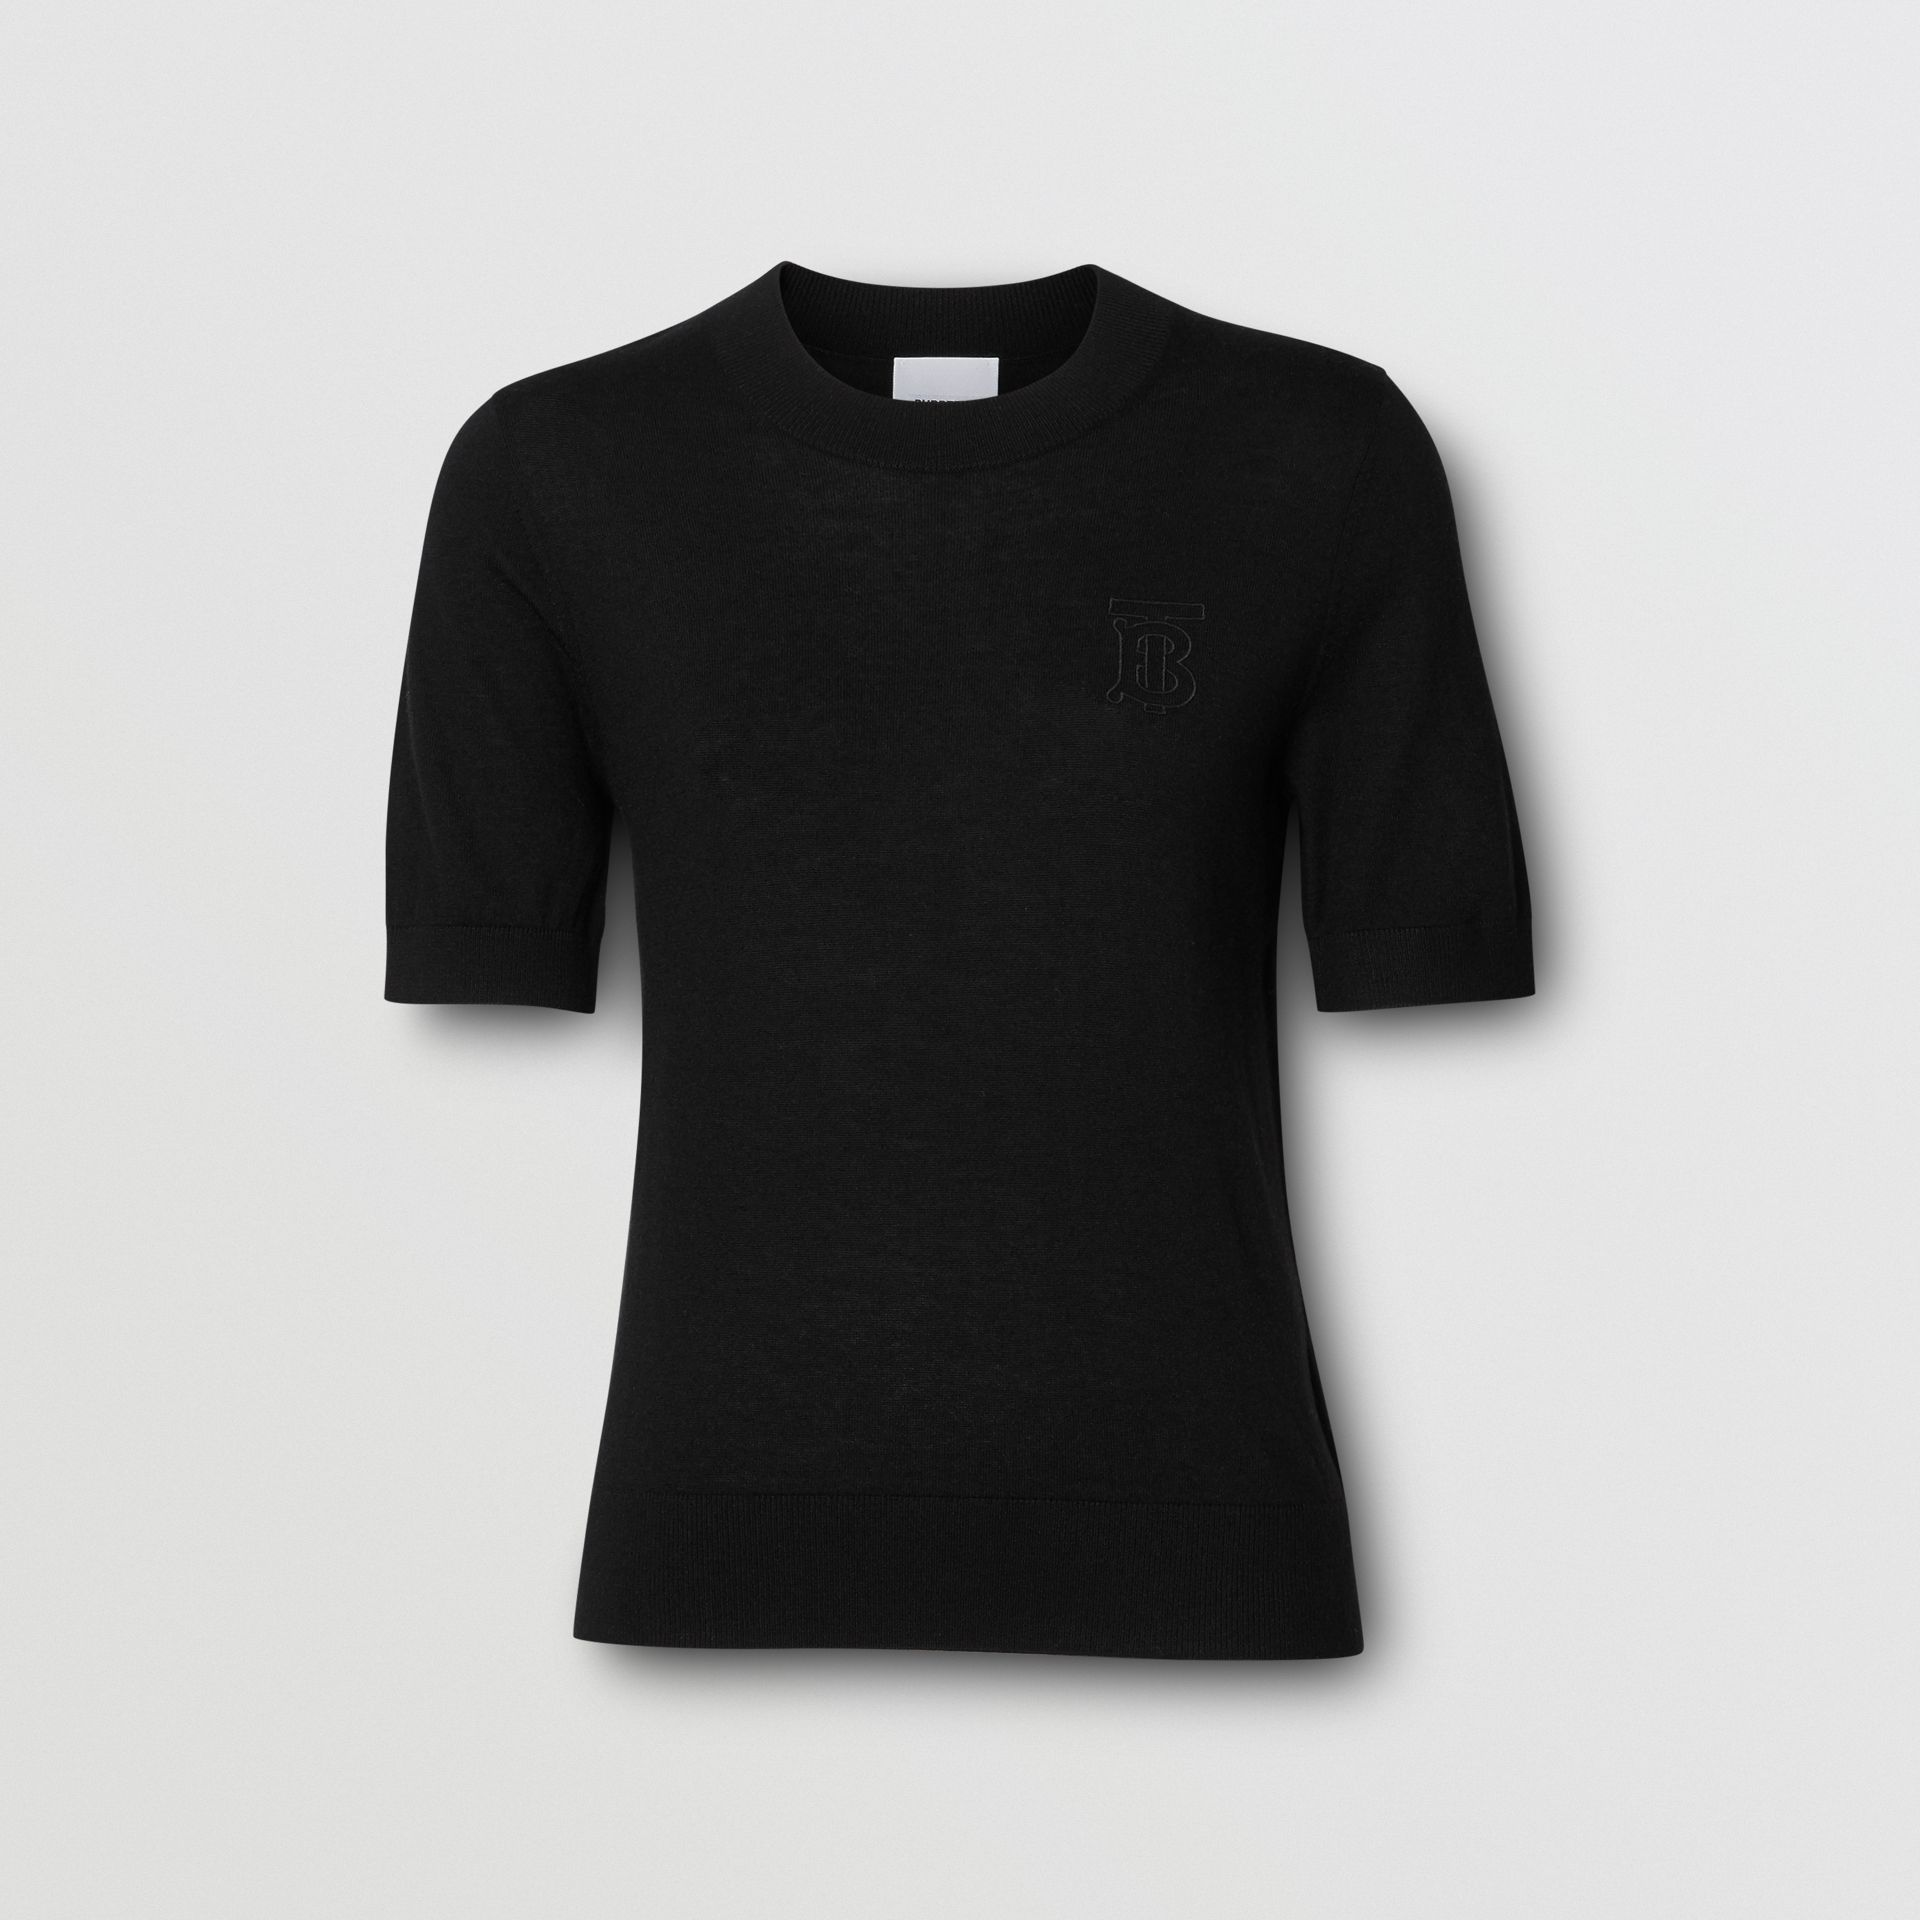 Monogram Motif Cashmere Top in Black - Women | Burberry United States - gallery image 3